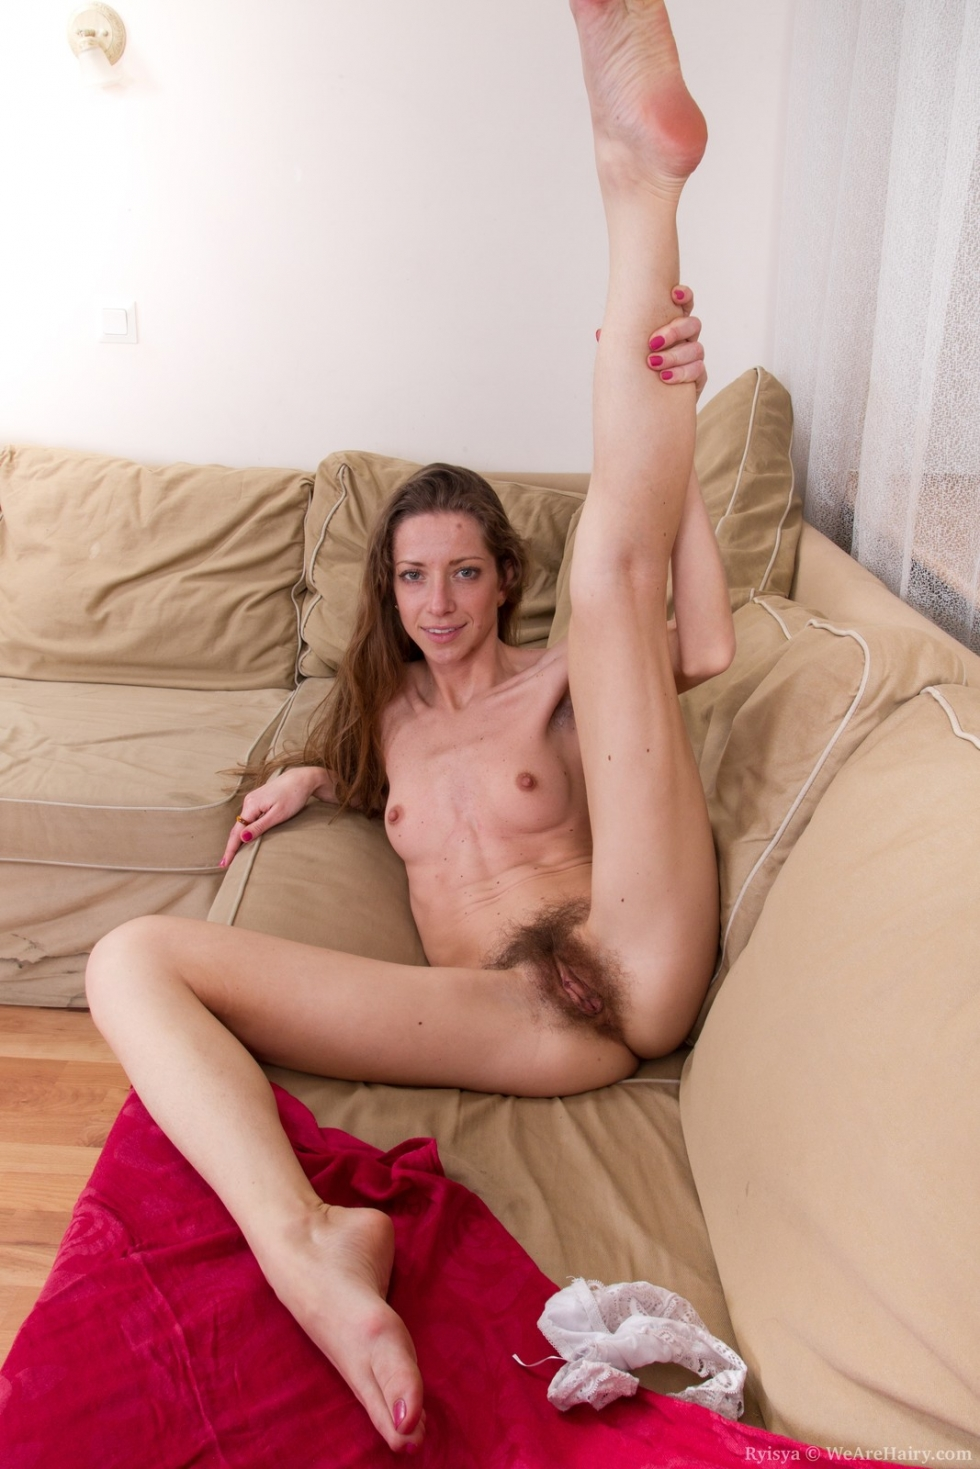 sexy women stripping nude